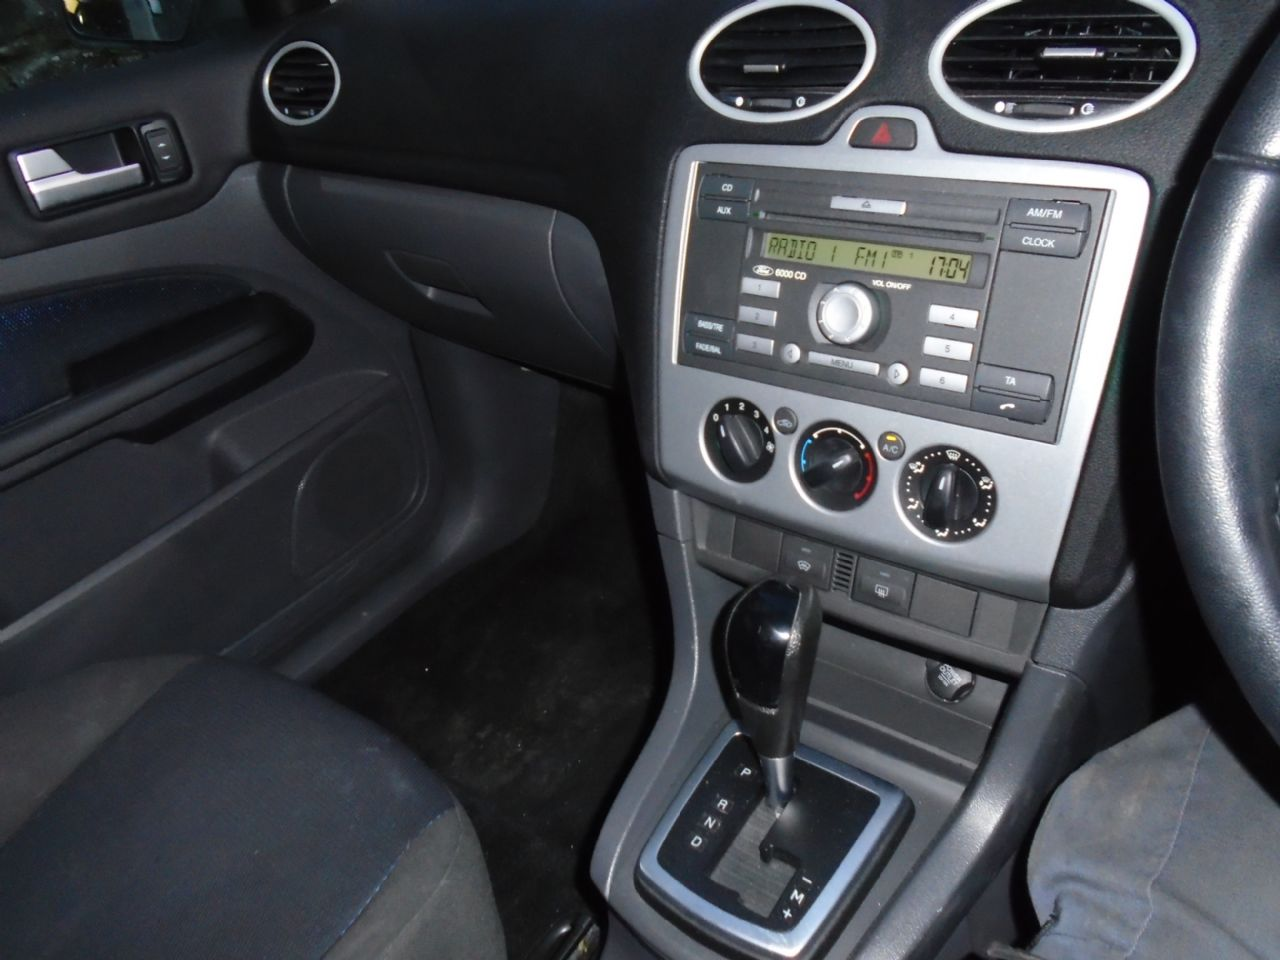 FORD FOCUS 1.6 Zetec Auto - Picture 6